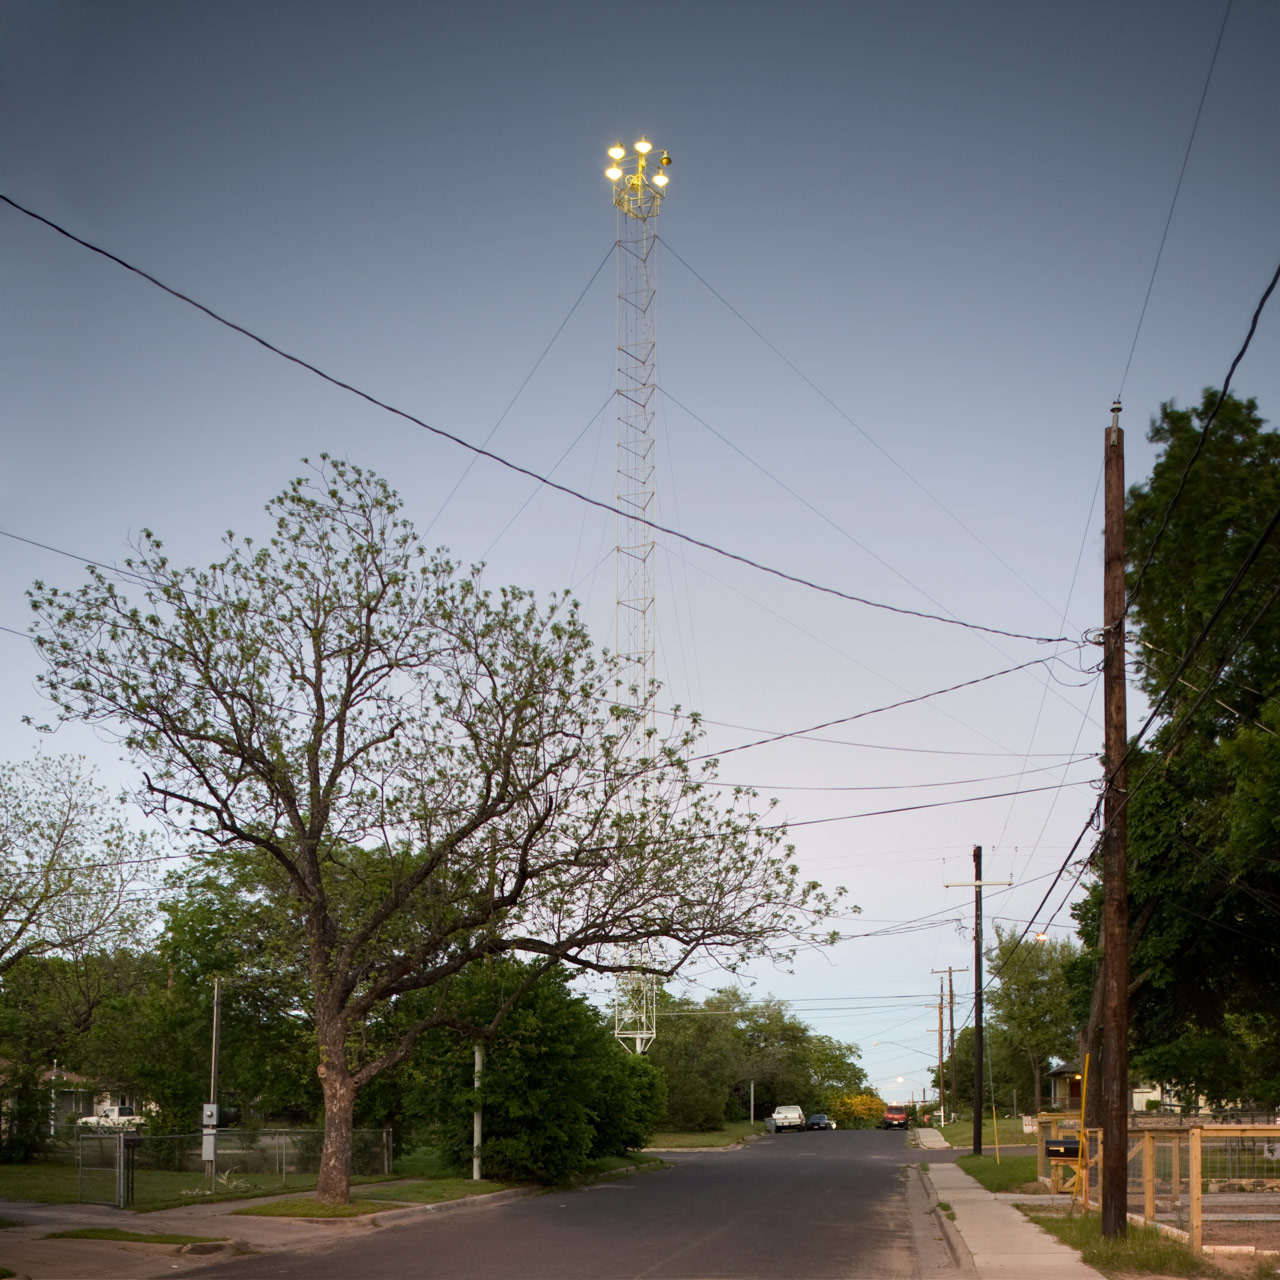 Andy_Mattern-Moonlight_Tower_13th-&-Coleto